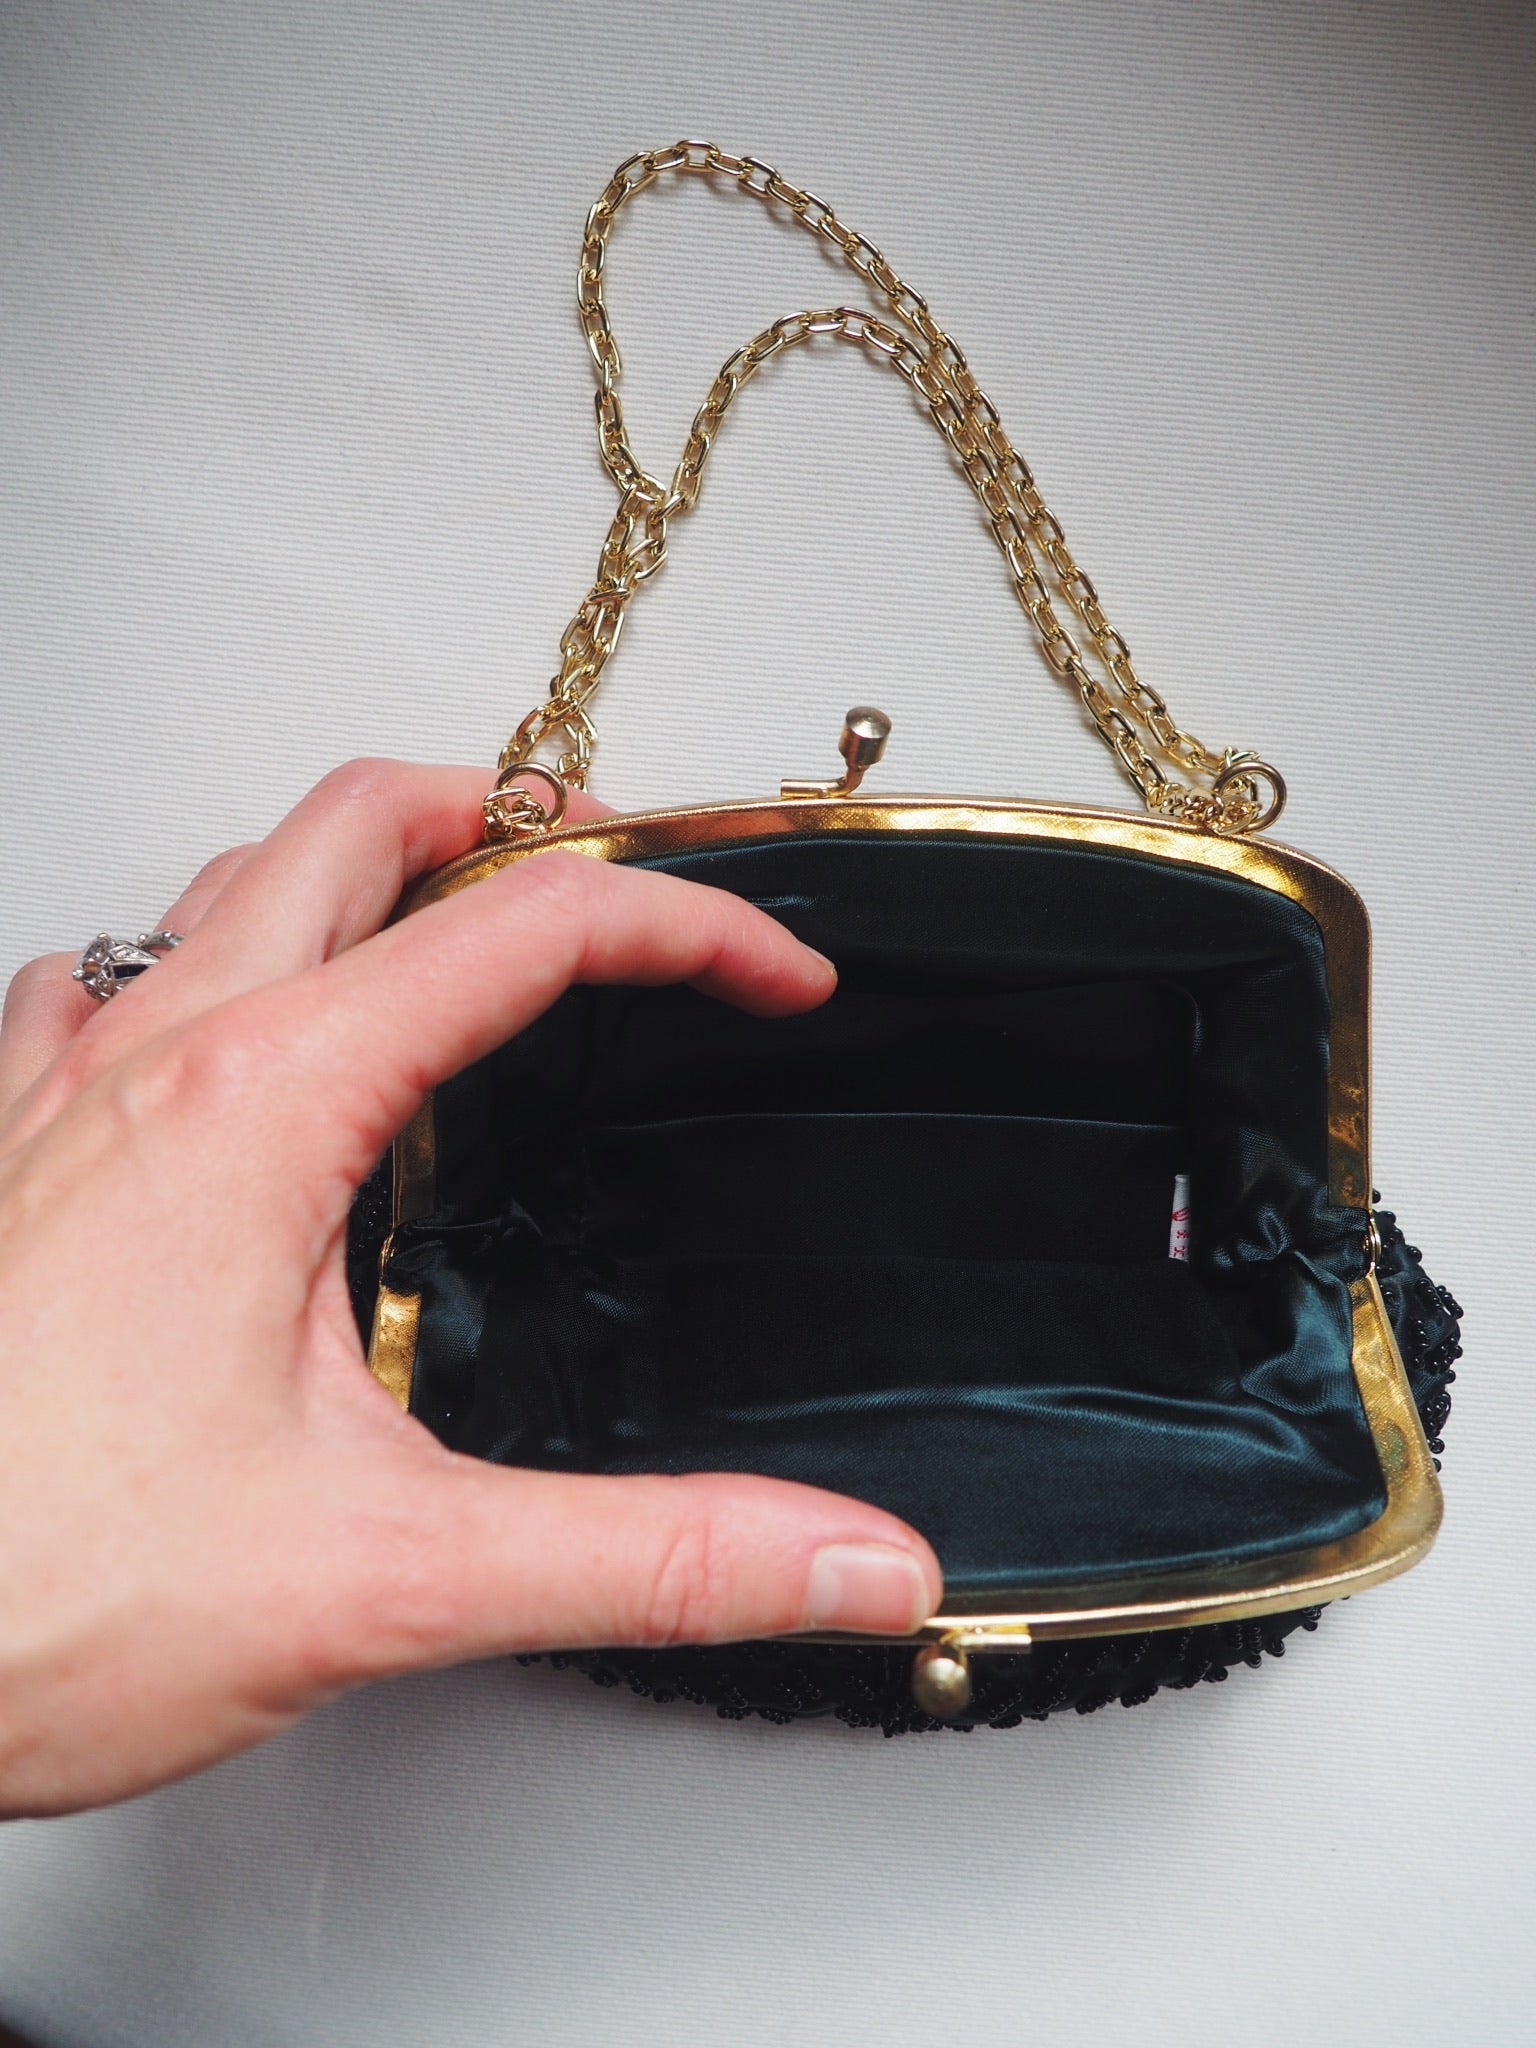 Vintage Black Beaded Evening Purse with Gold Chain